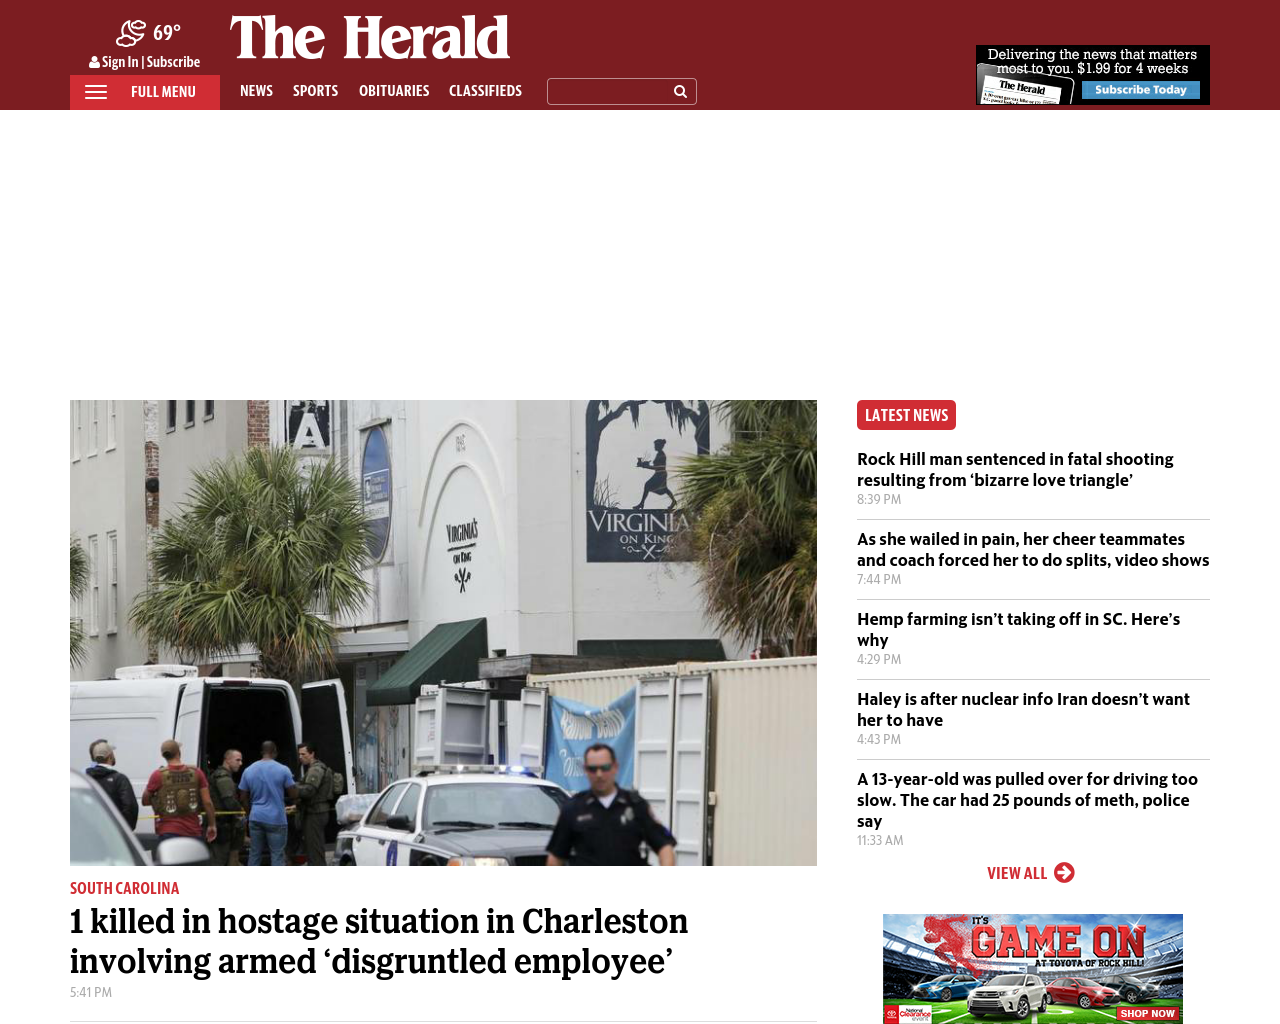 The-Herald-Advertising-Reviews-Pricing